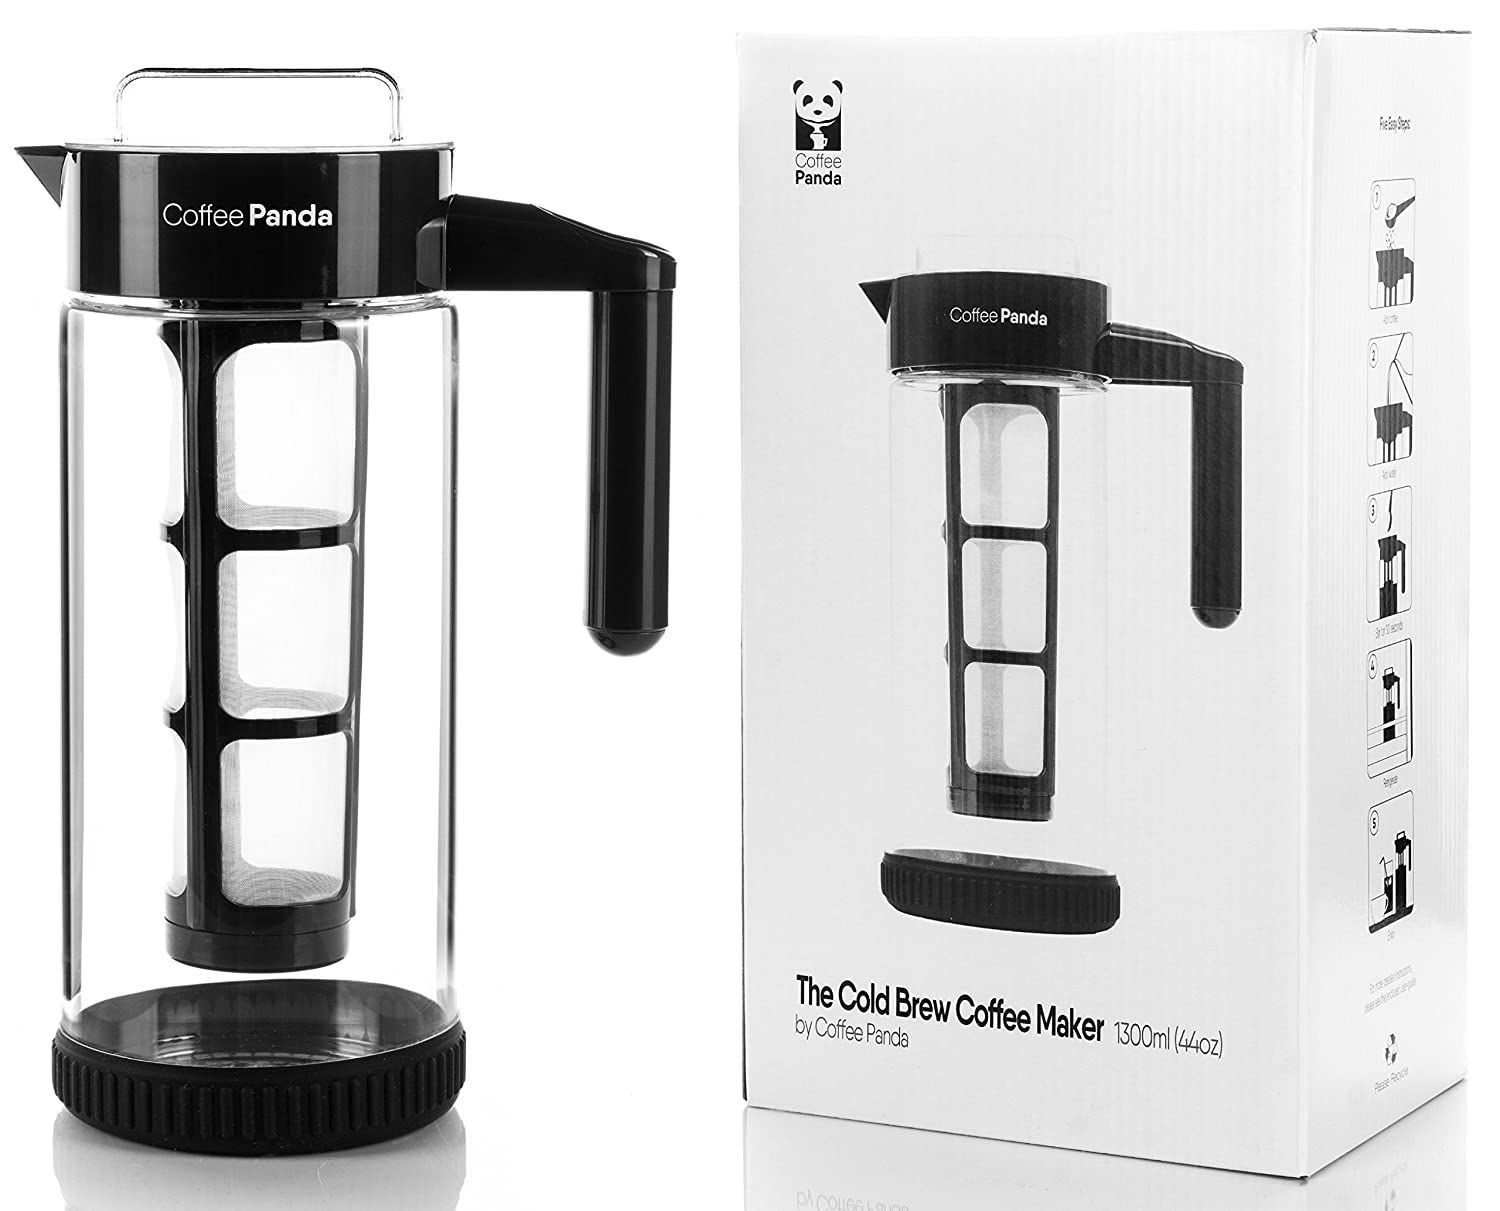 Coffee Panda Cold Brew Coffee Maker Review